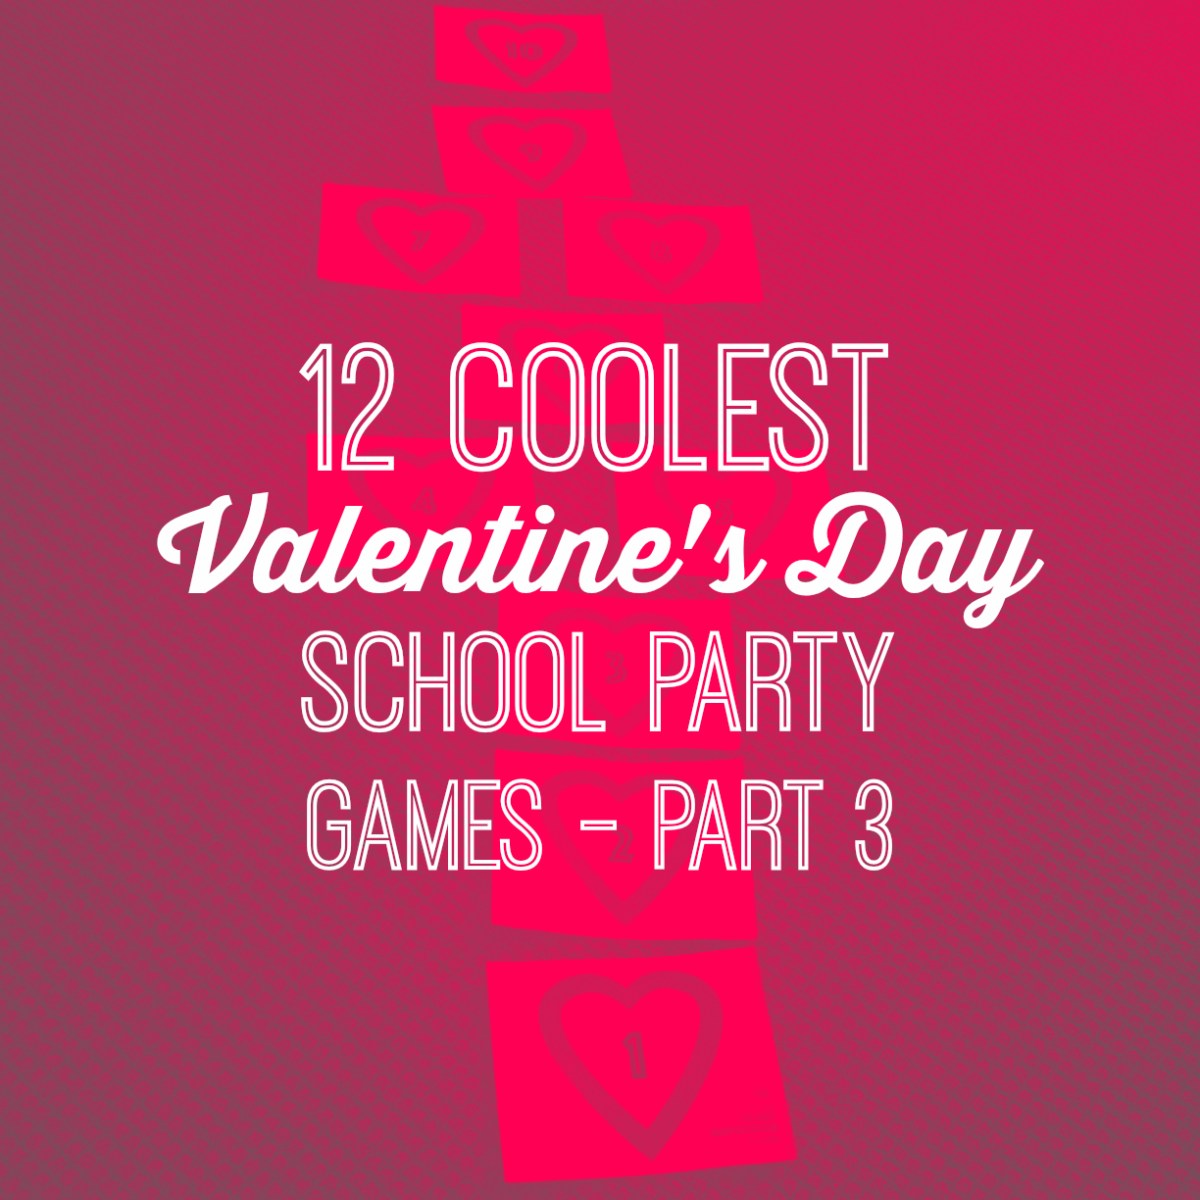 12 Coolest Valentines Day School Party Games -- Part 3